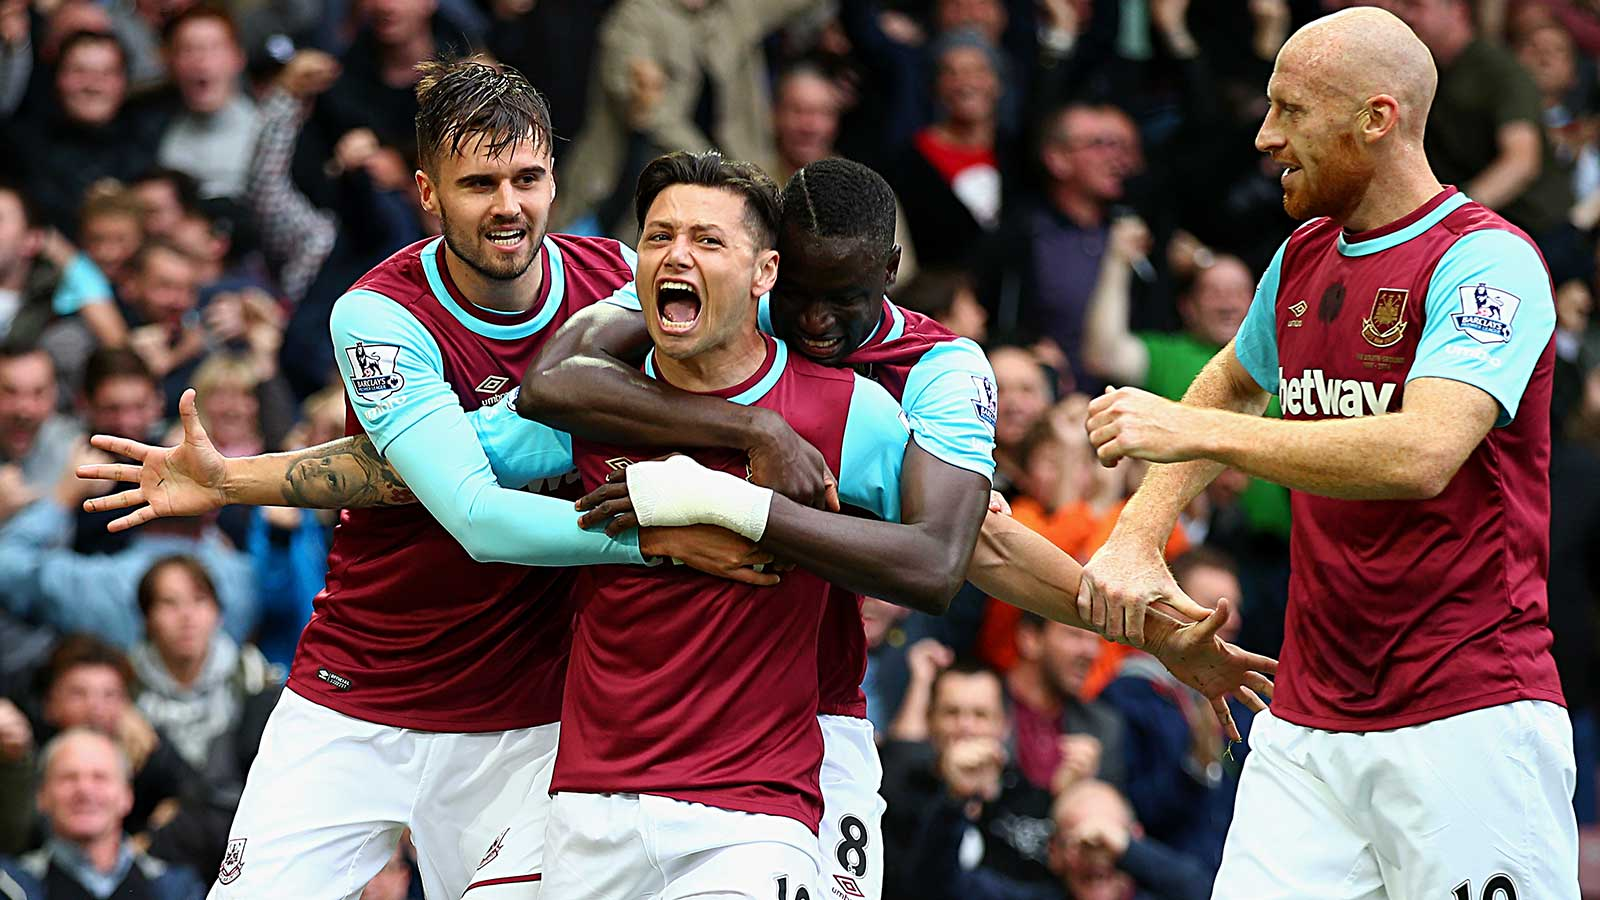 West Ham claim derby spoils to add more misery on Chelsea